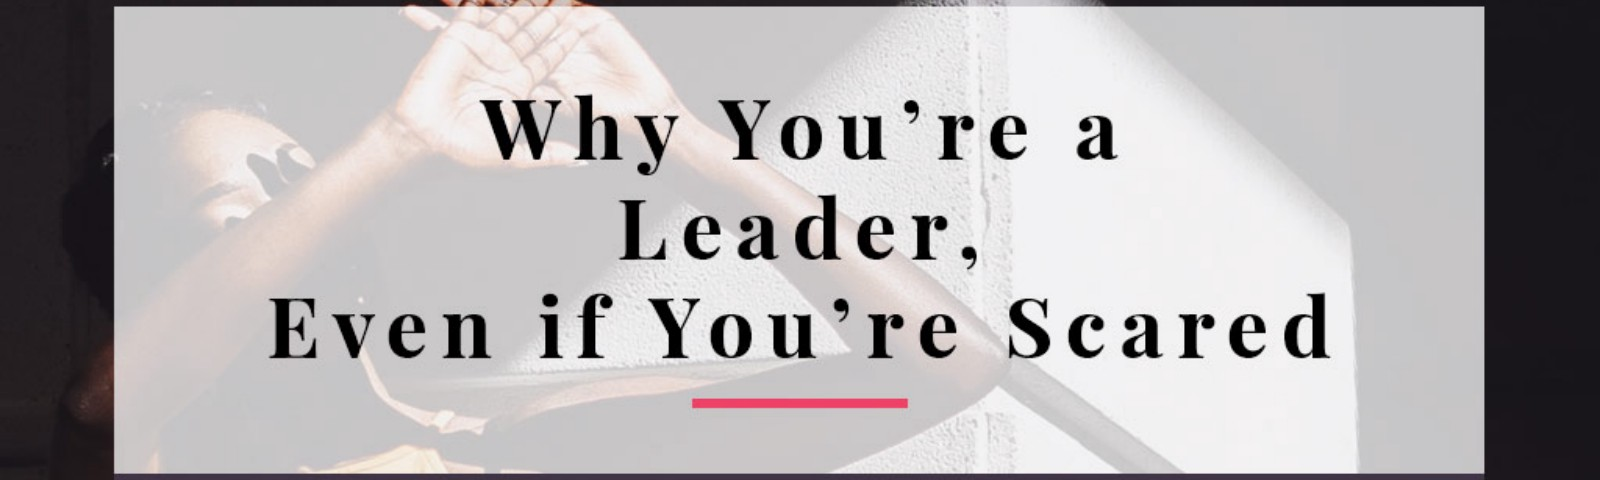 You're a leader, even if you're scared. Woman shying away from leadership because she's scared